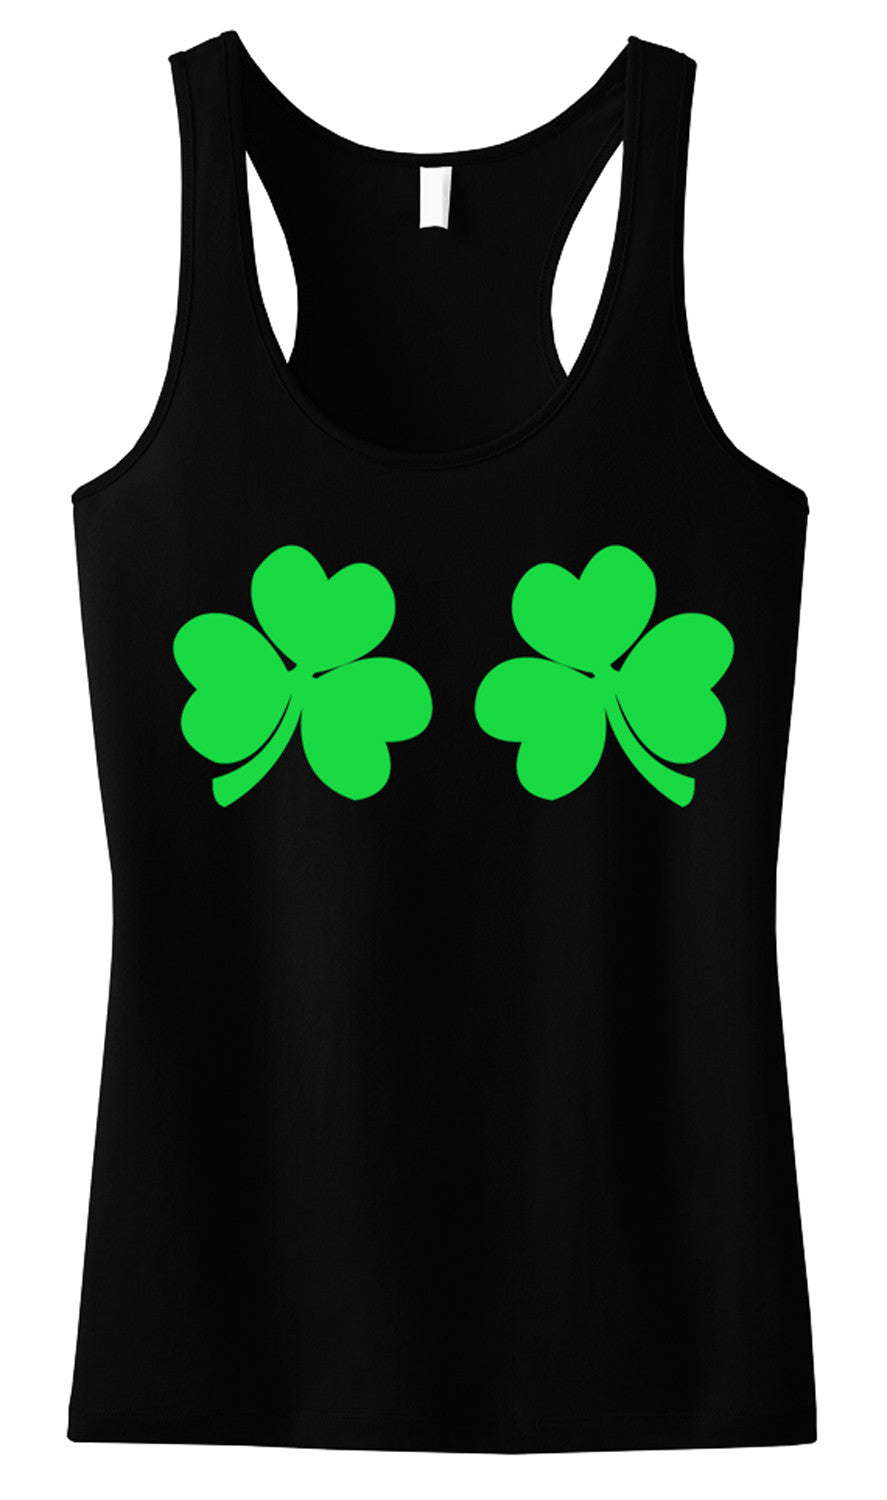 Shamrocks Bikini Tank Top - Black with Green Print